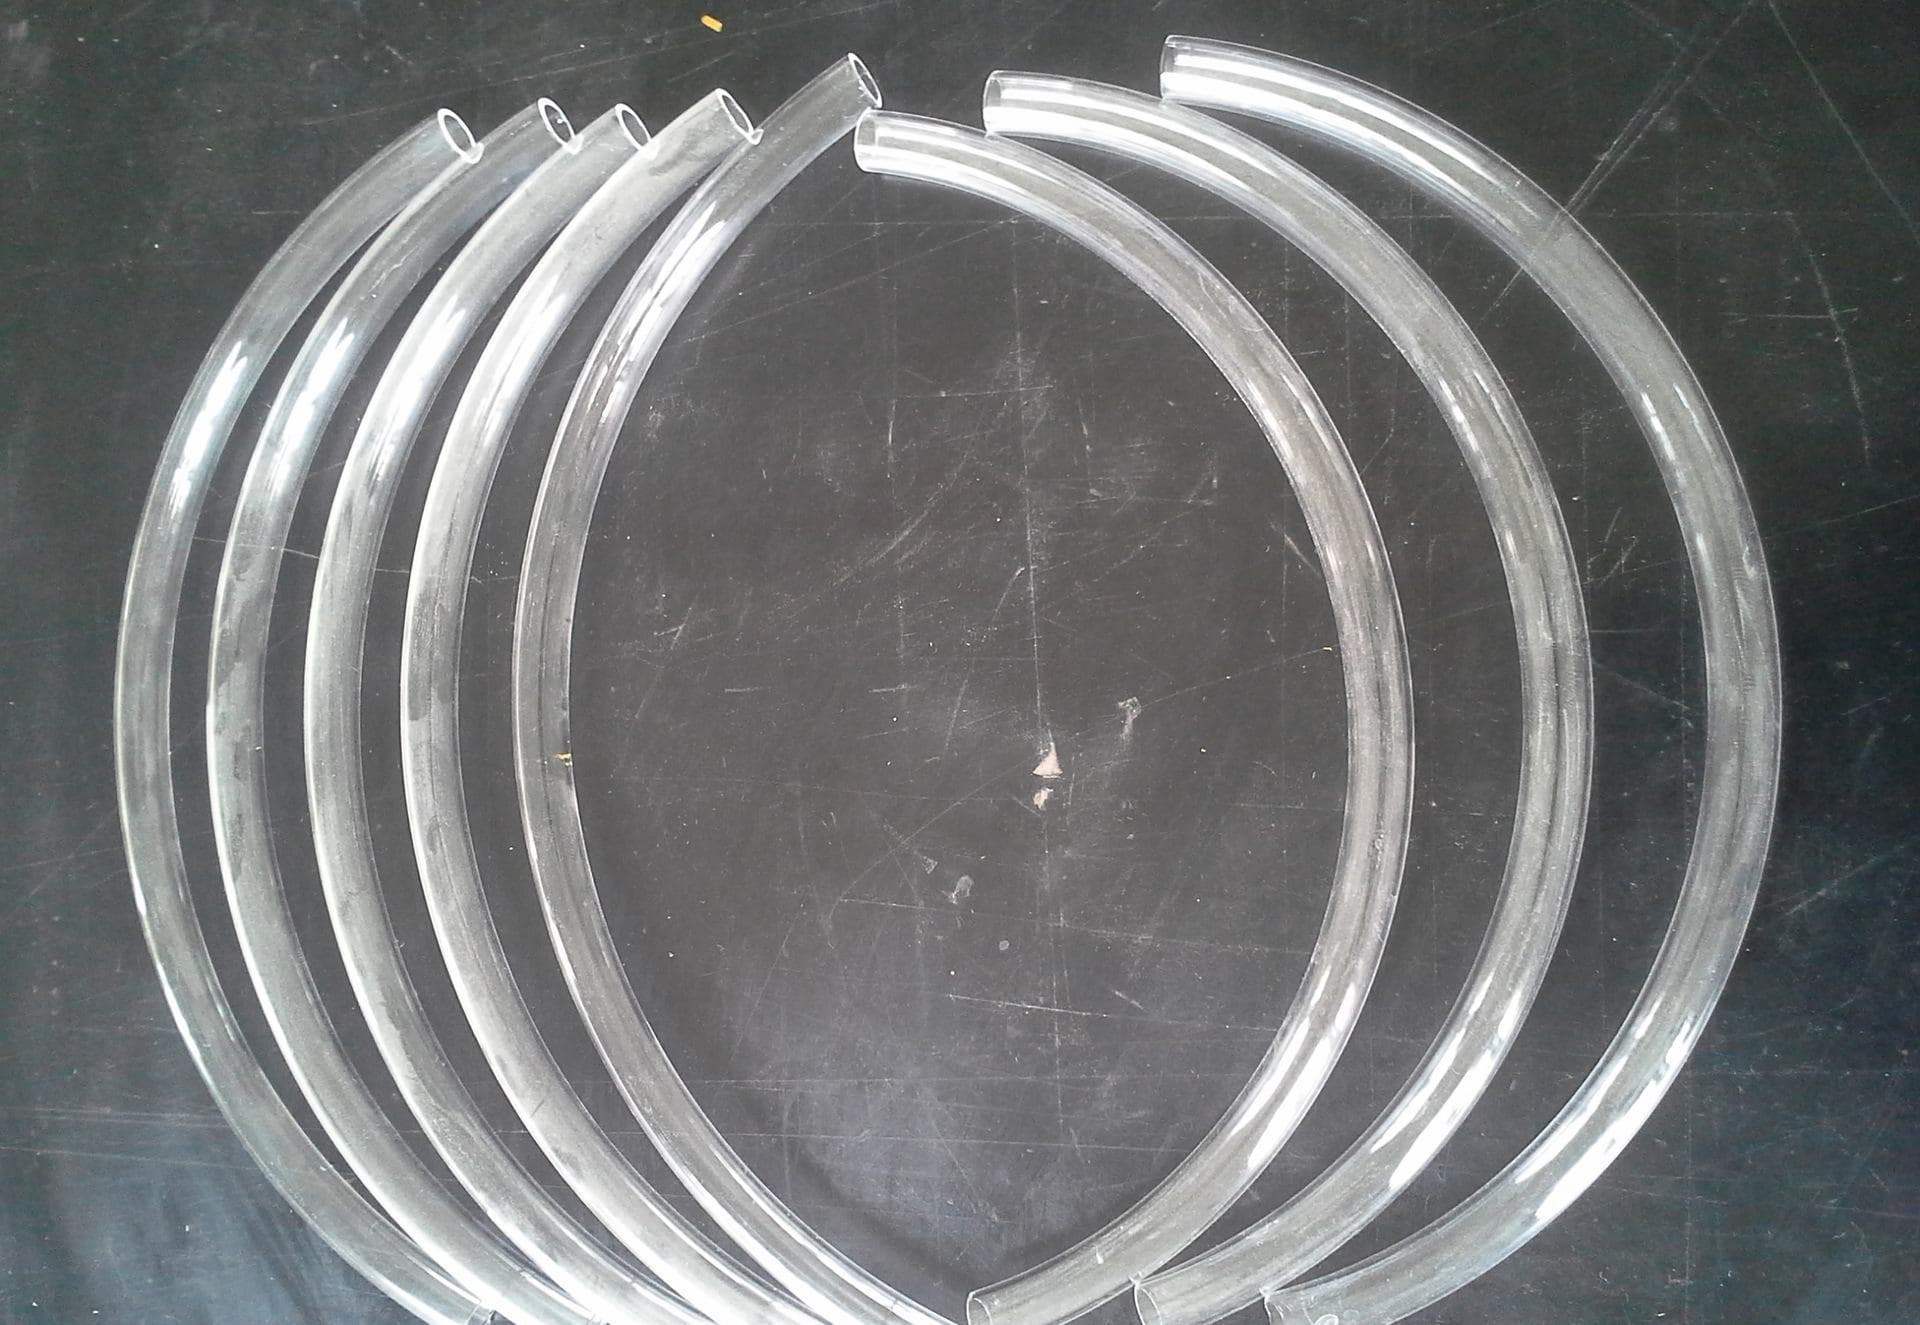 Spiral Clear Quartz Glass Tubes